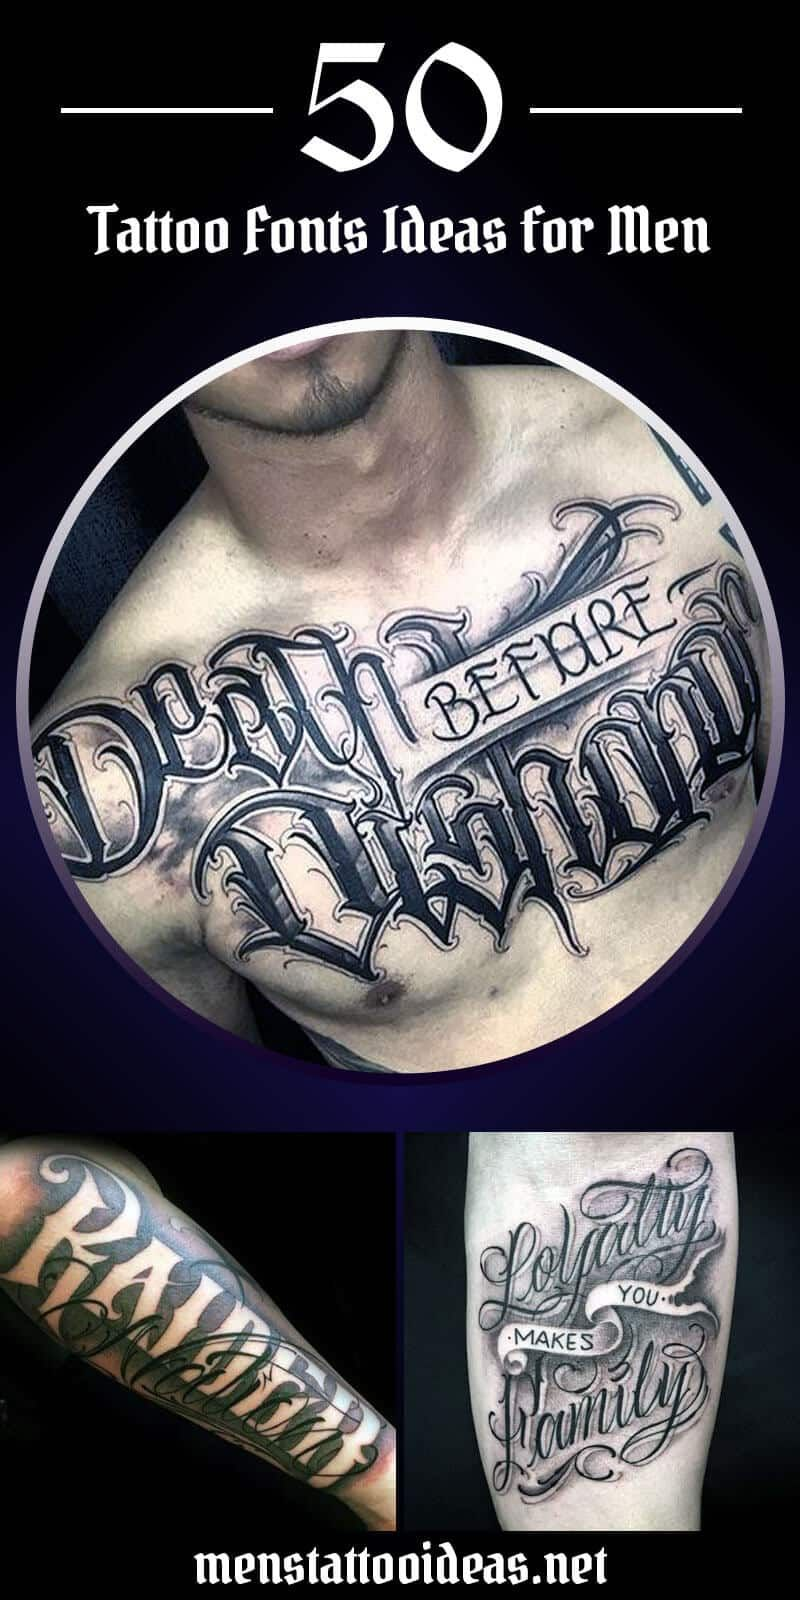 Tattoo Font Ideas for Men Tattoo font for men, Tattoo